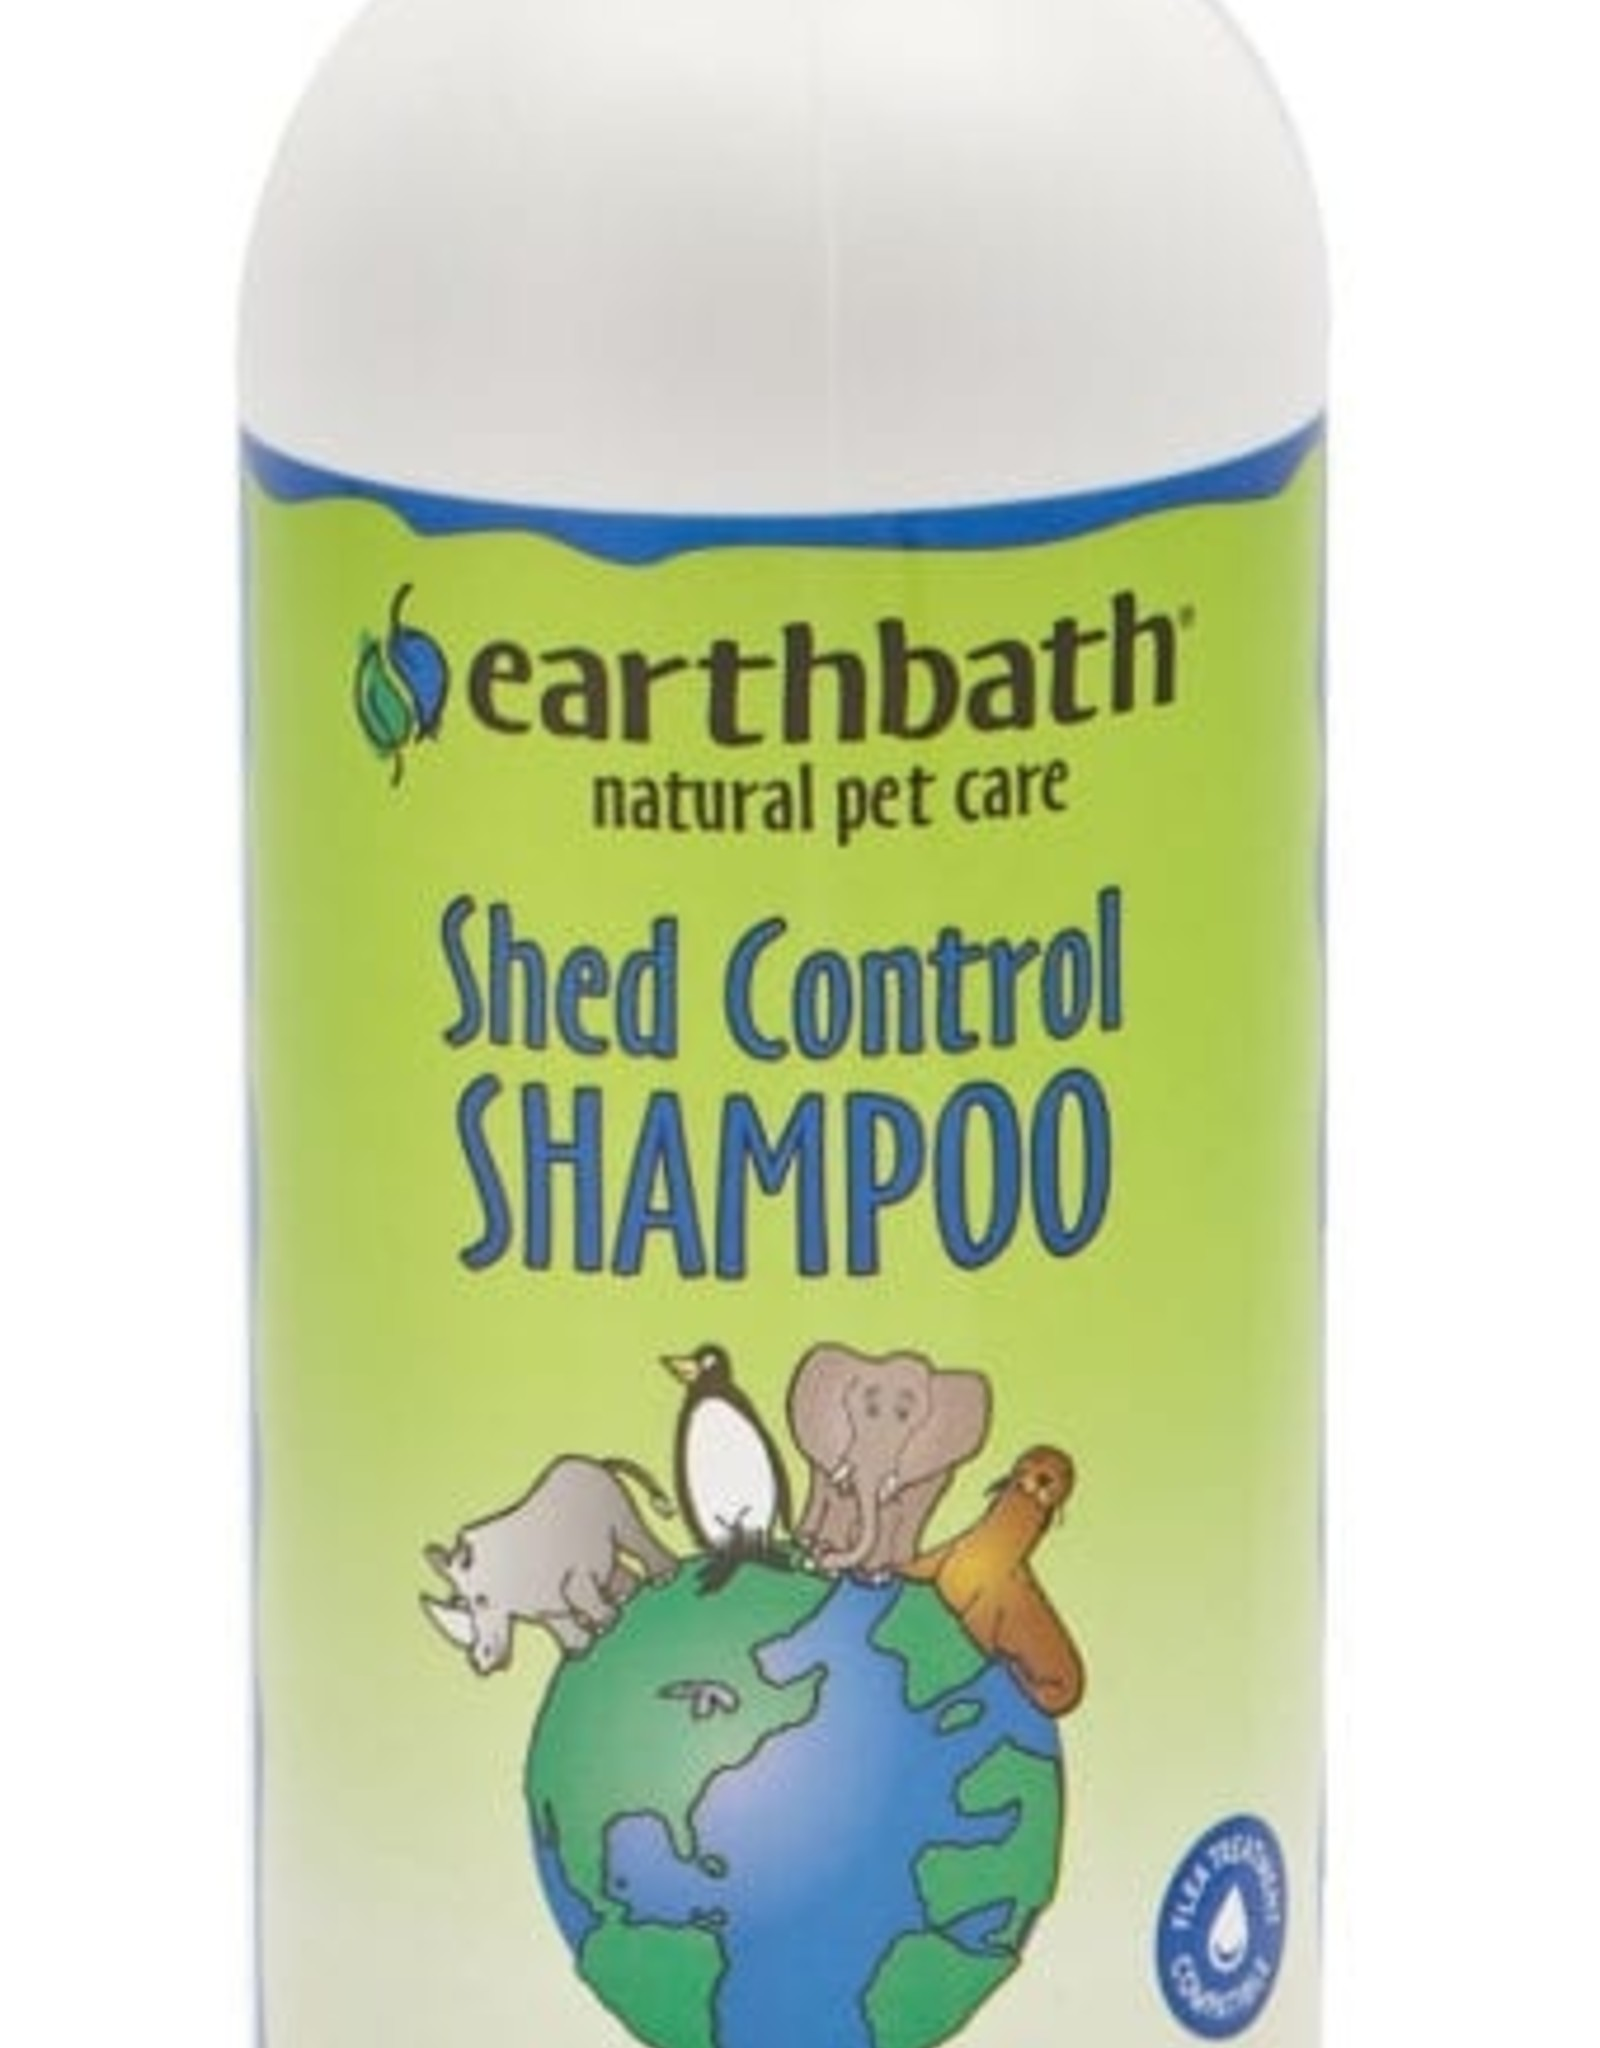 earthbath Shed Control Shampoo - 16oz